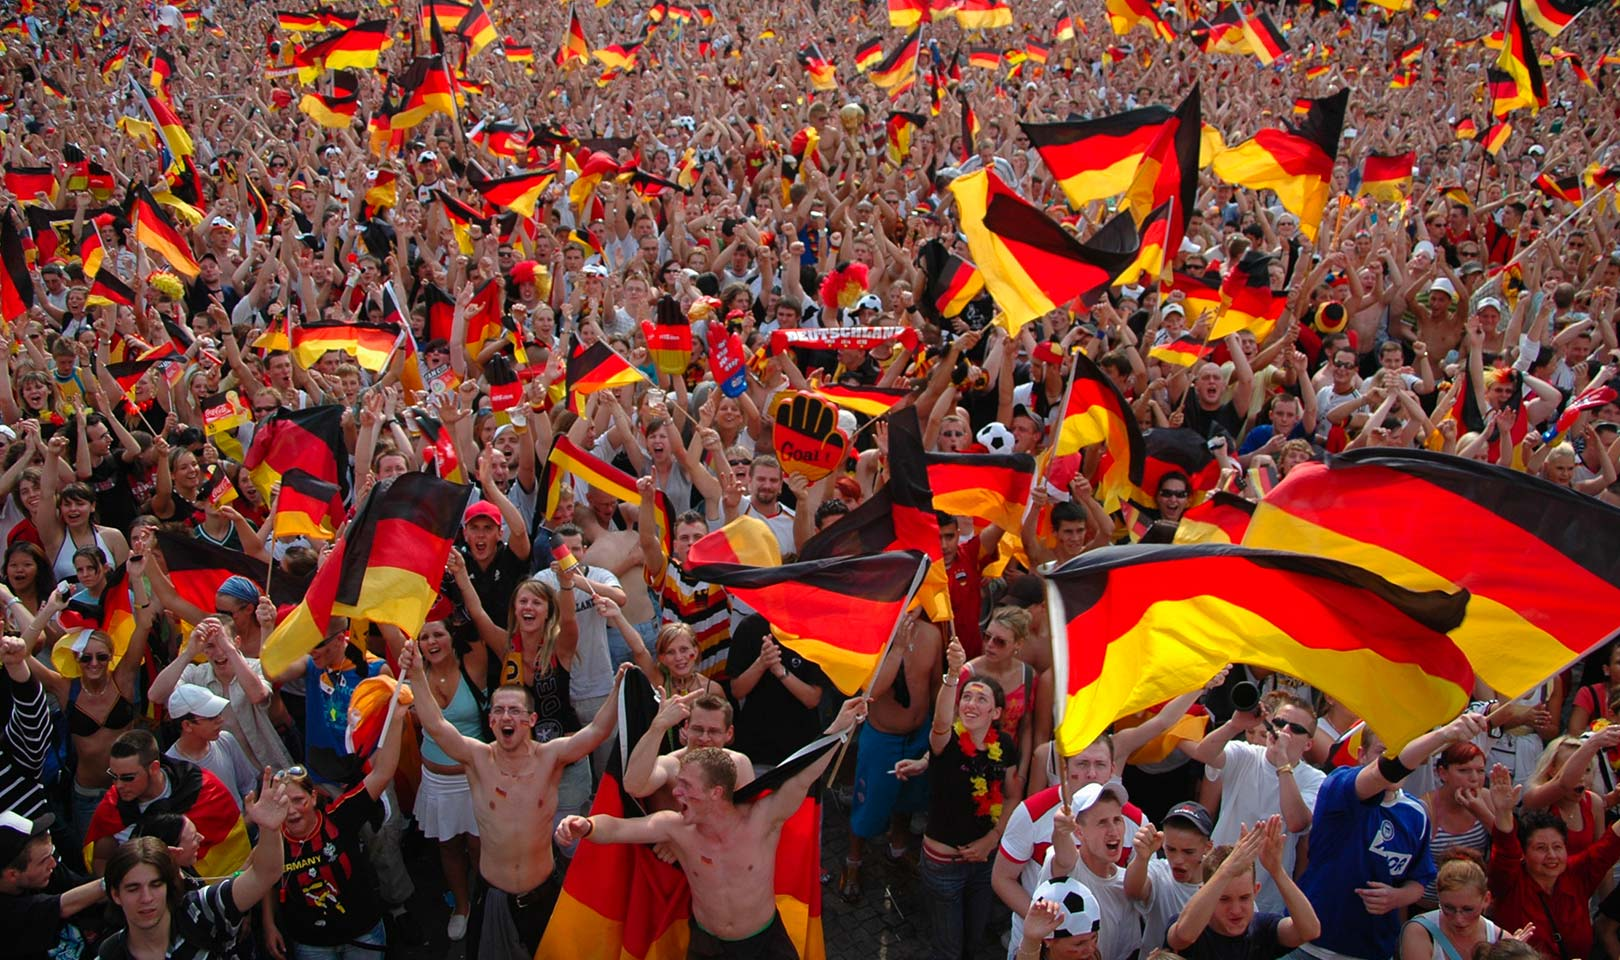 German football fans.